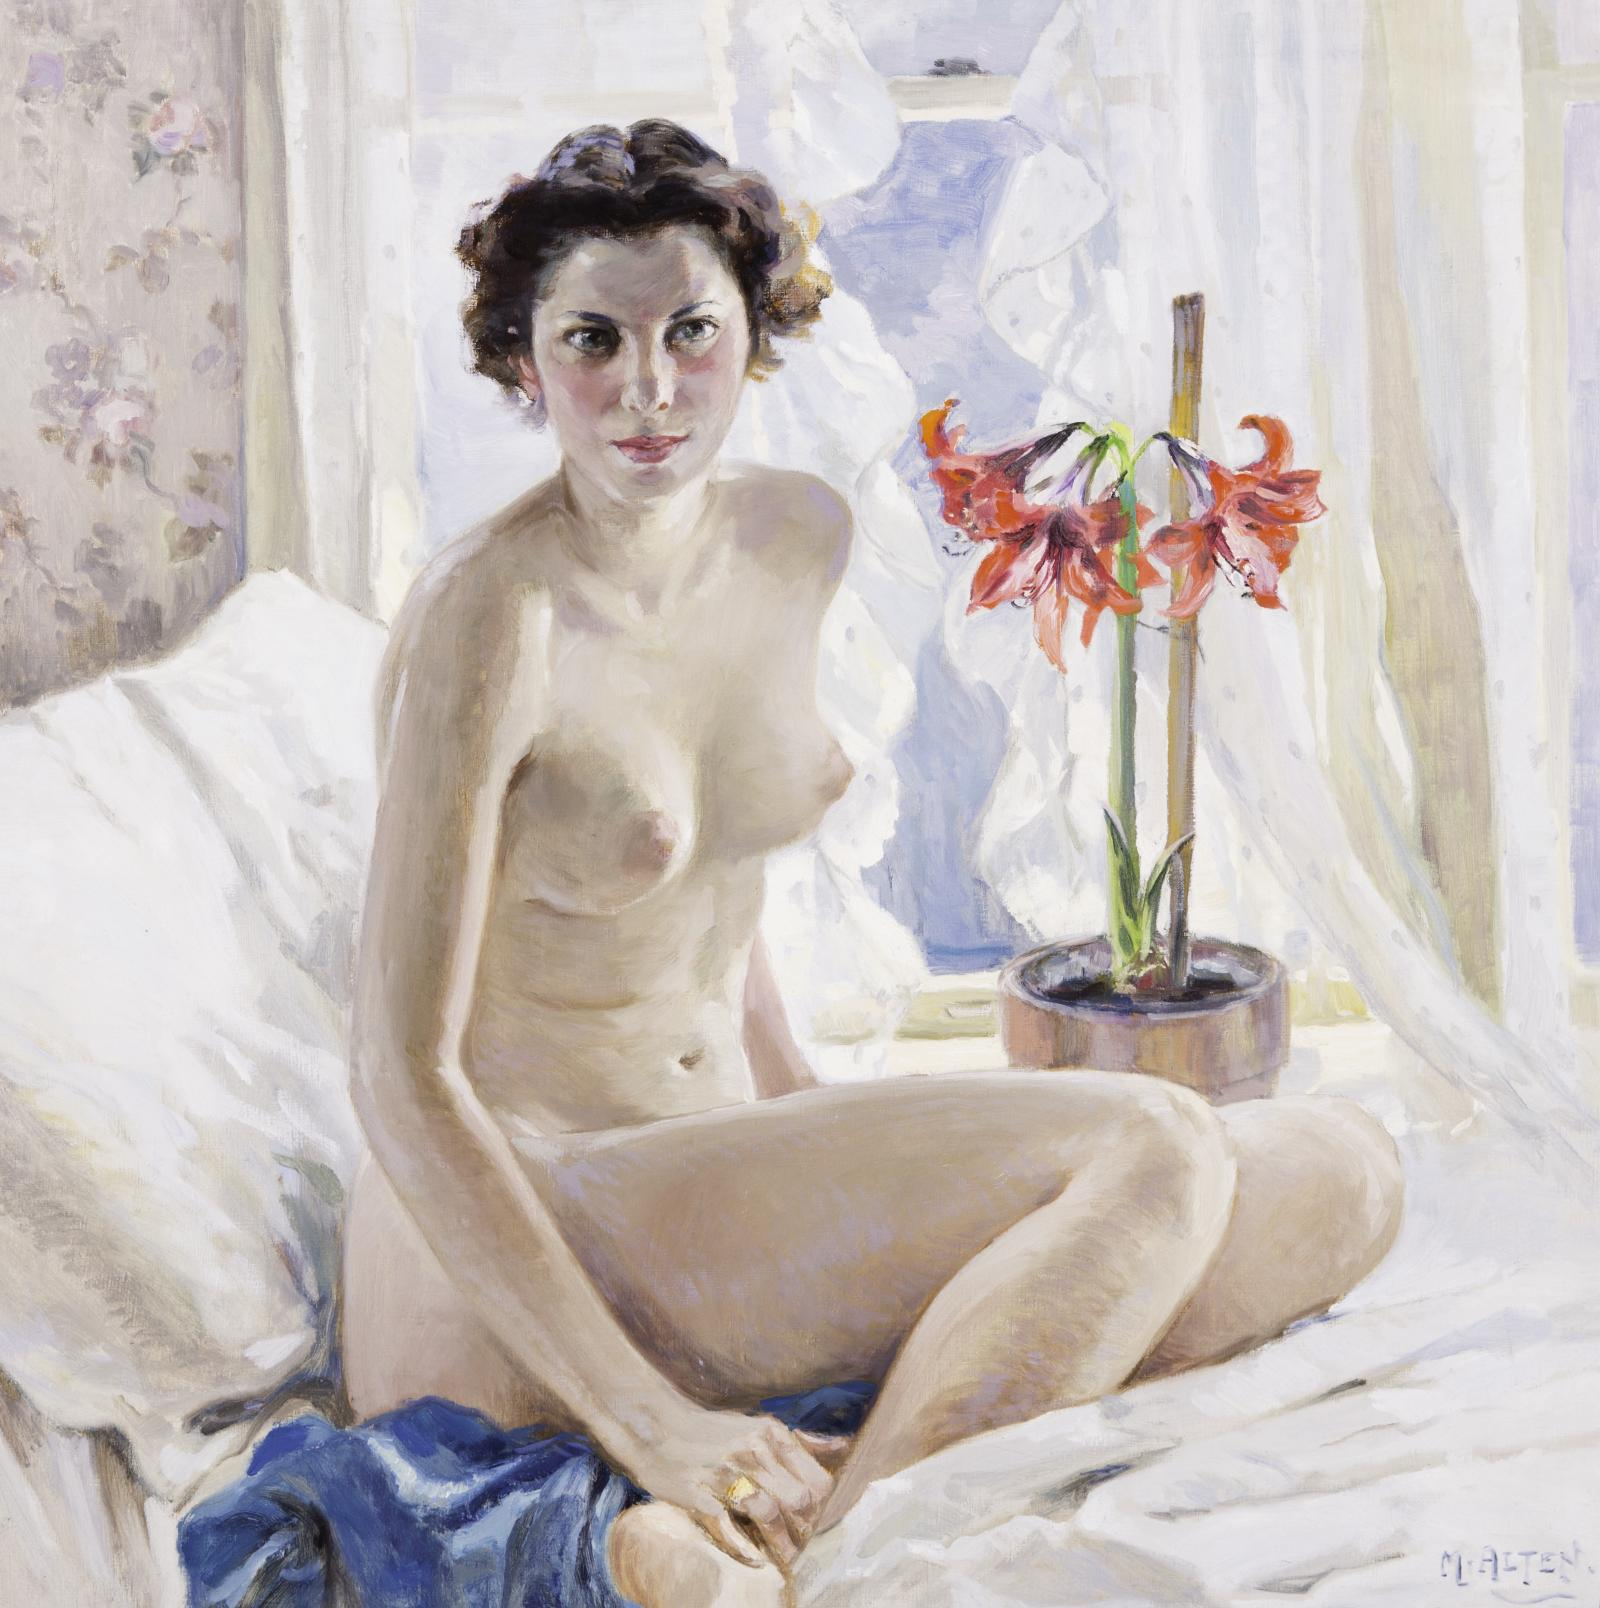 Nude brunette with Amaryllis flower seated upon white bed.